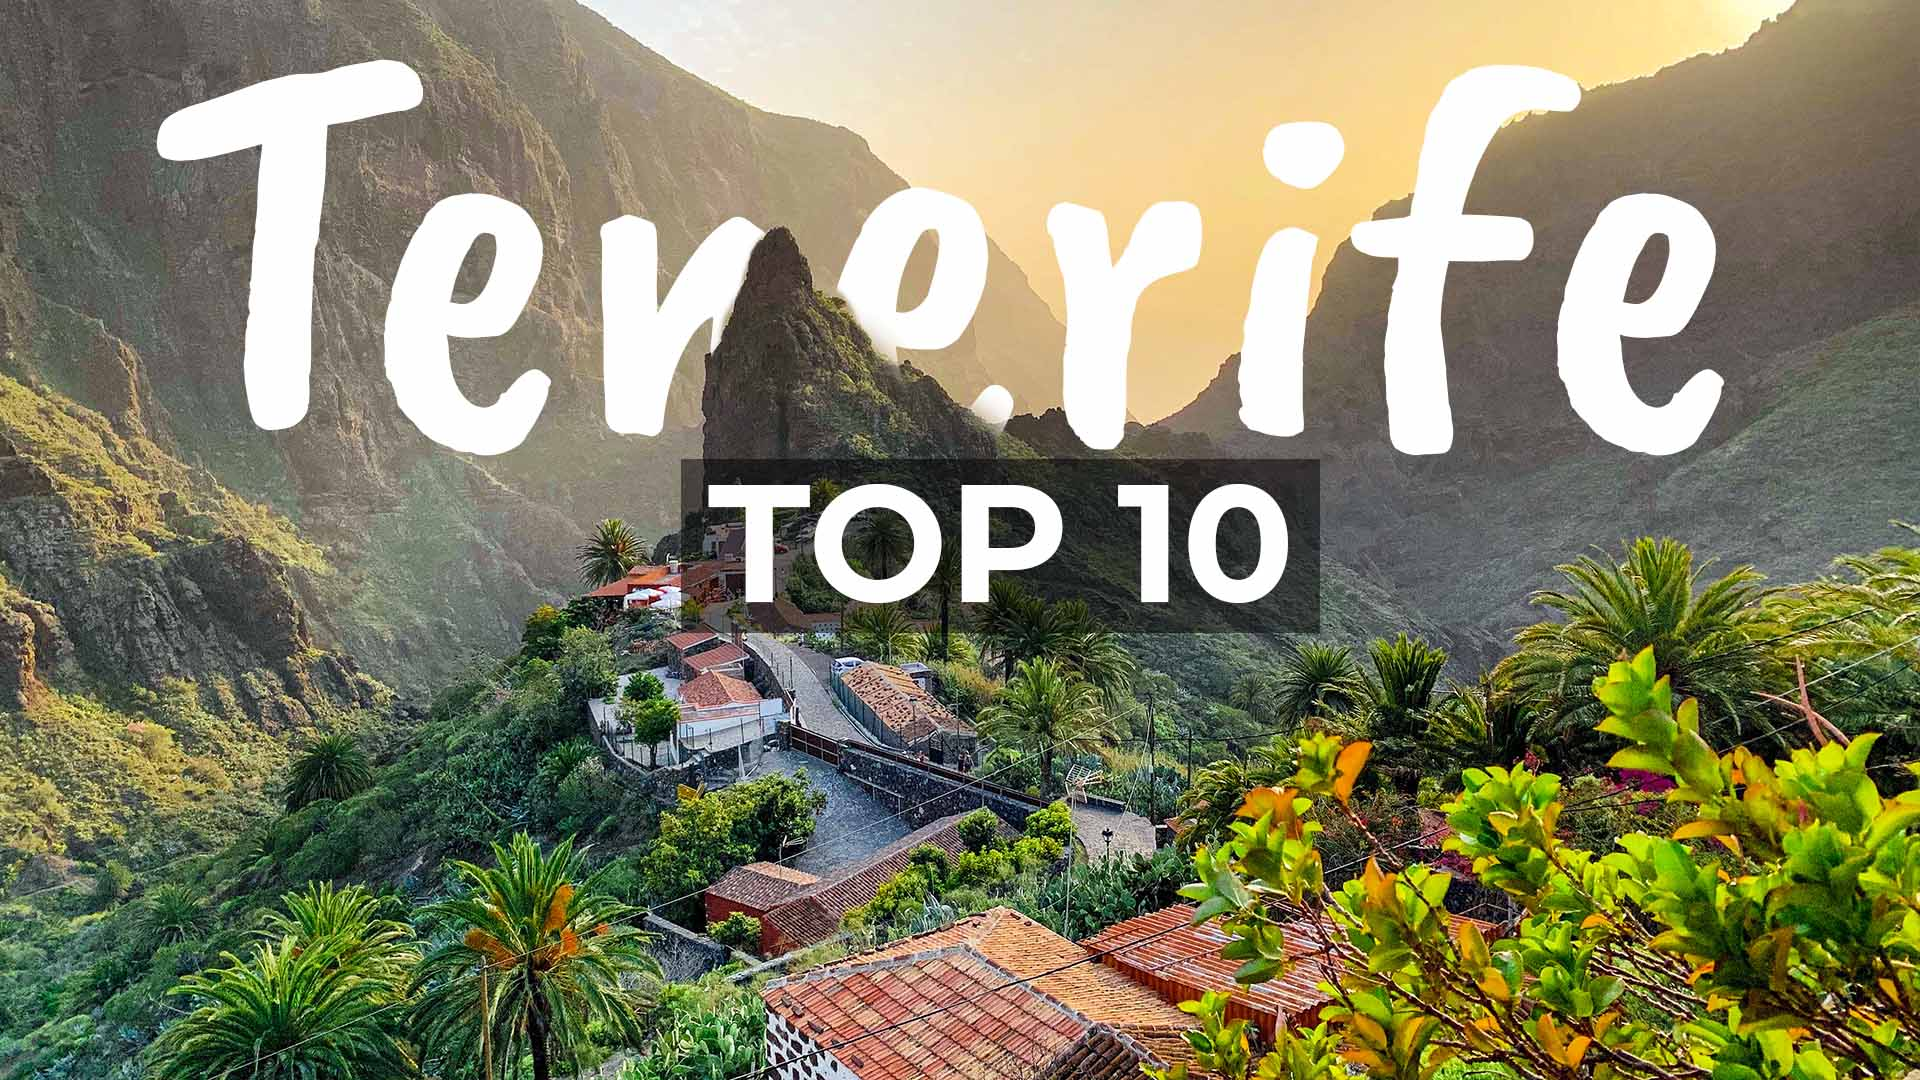 Best 10 Things to Do on Tenerife Spain - Cover